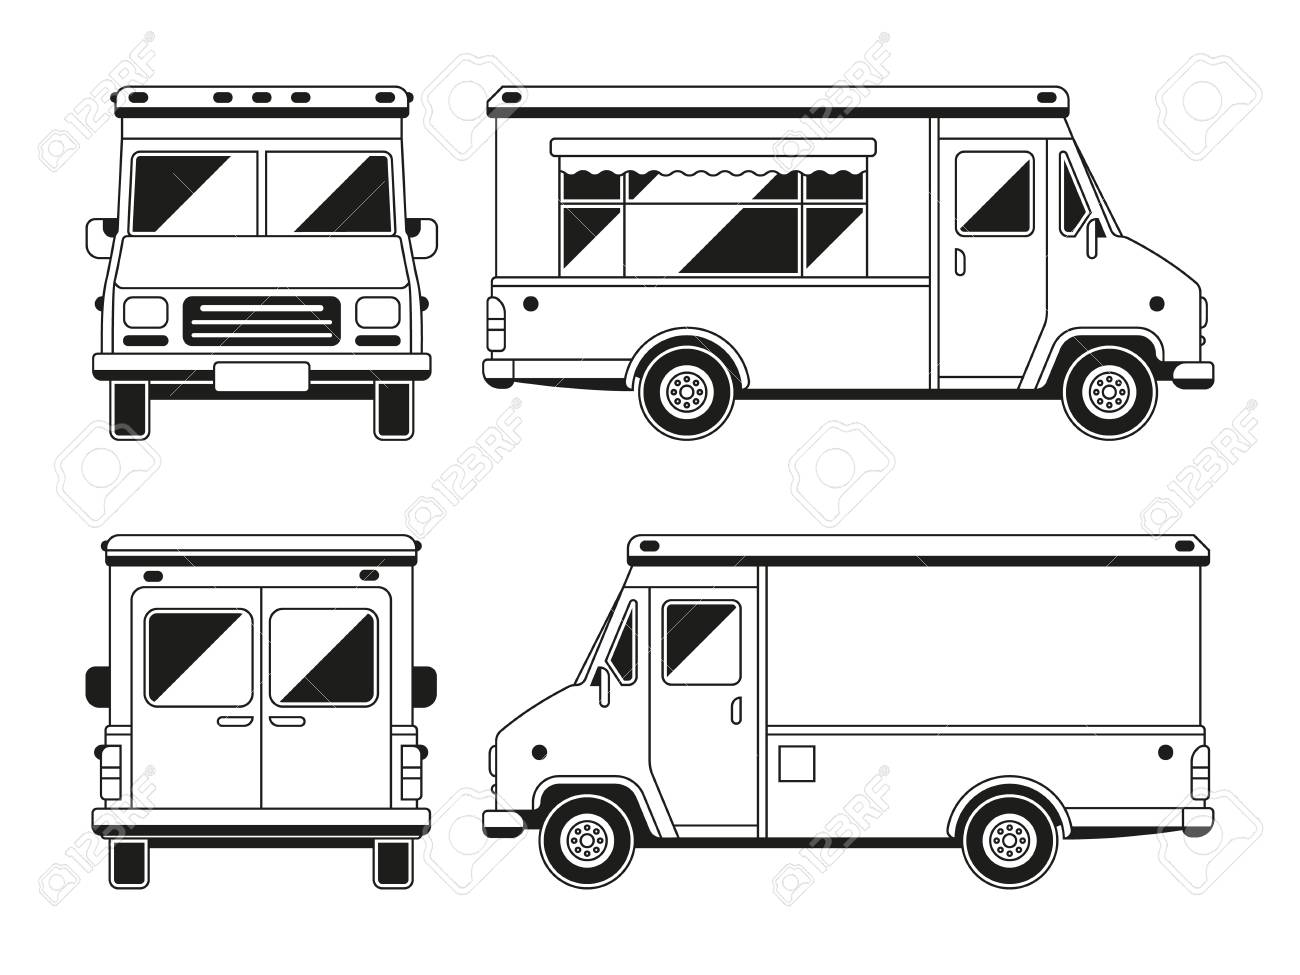 blank commercial food truck in different points of view outline